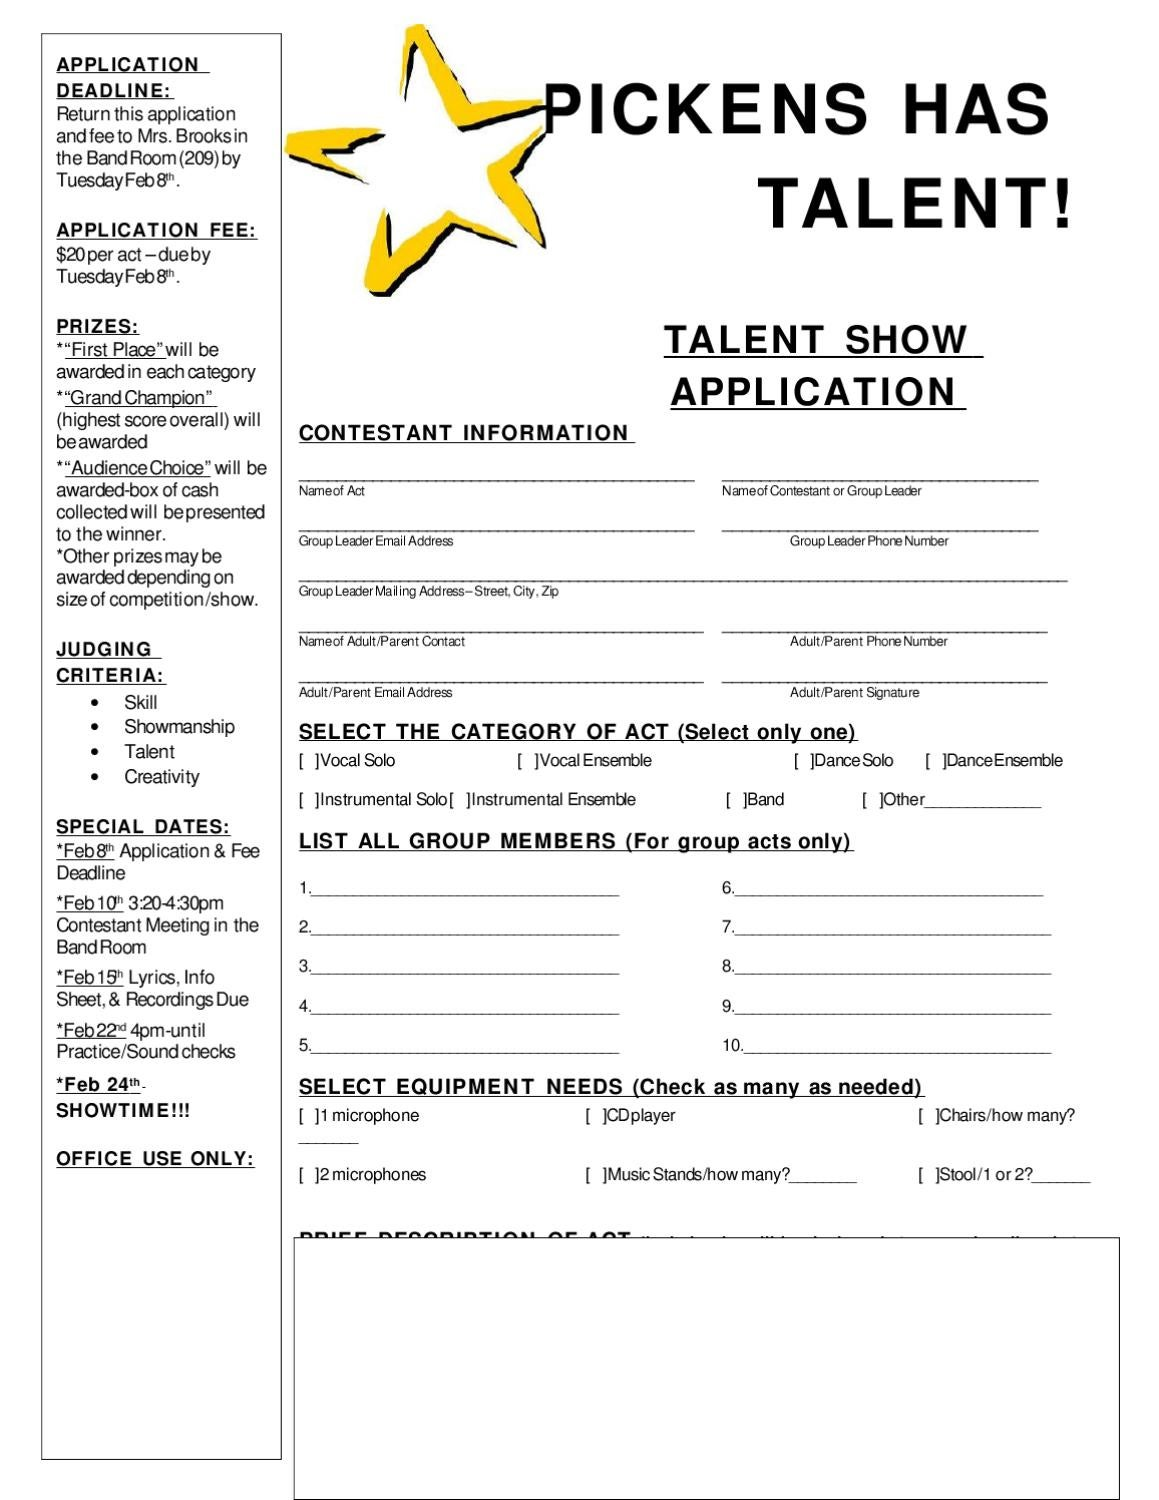 Pickens Talent Show Application & Rules By Pickens Bands